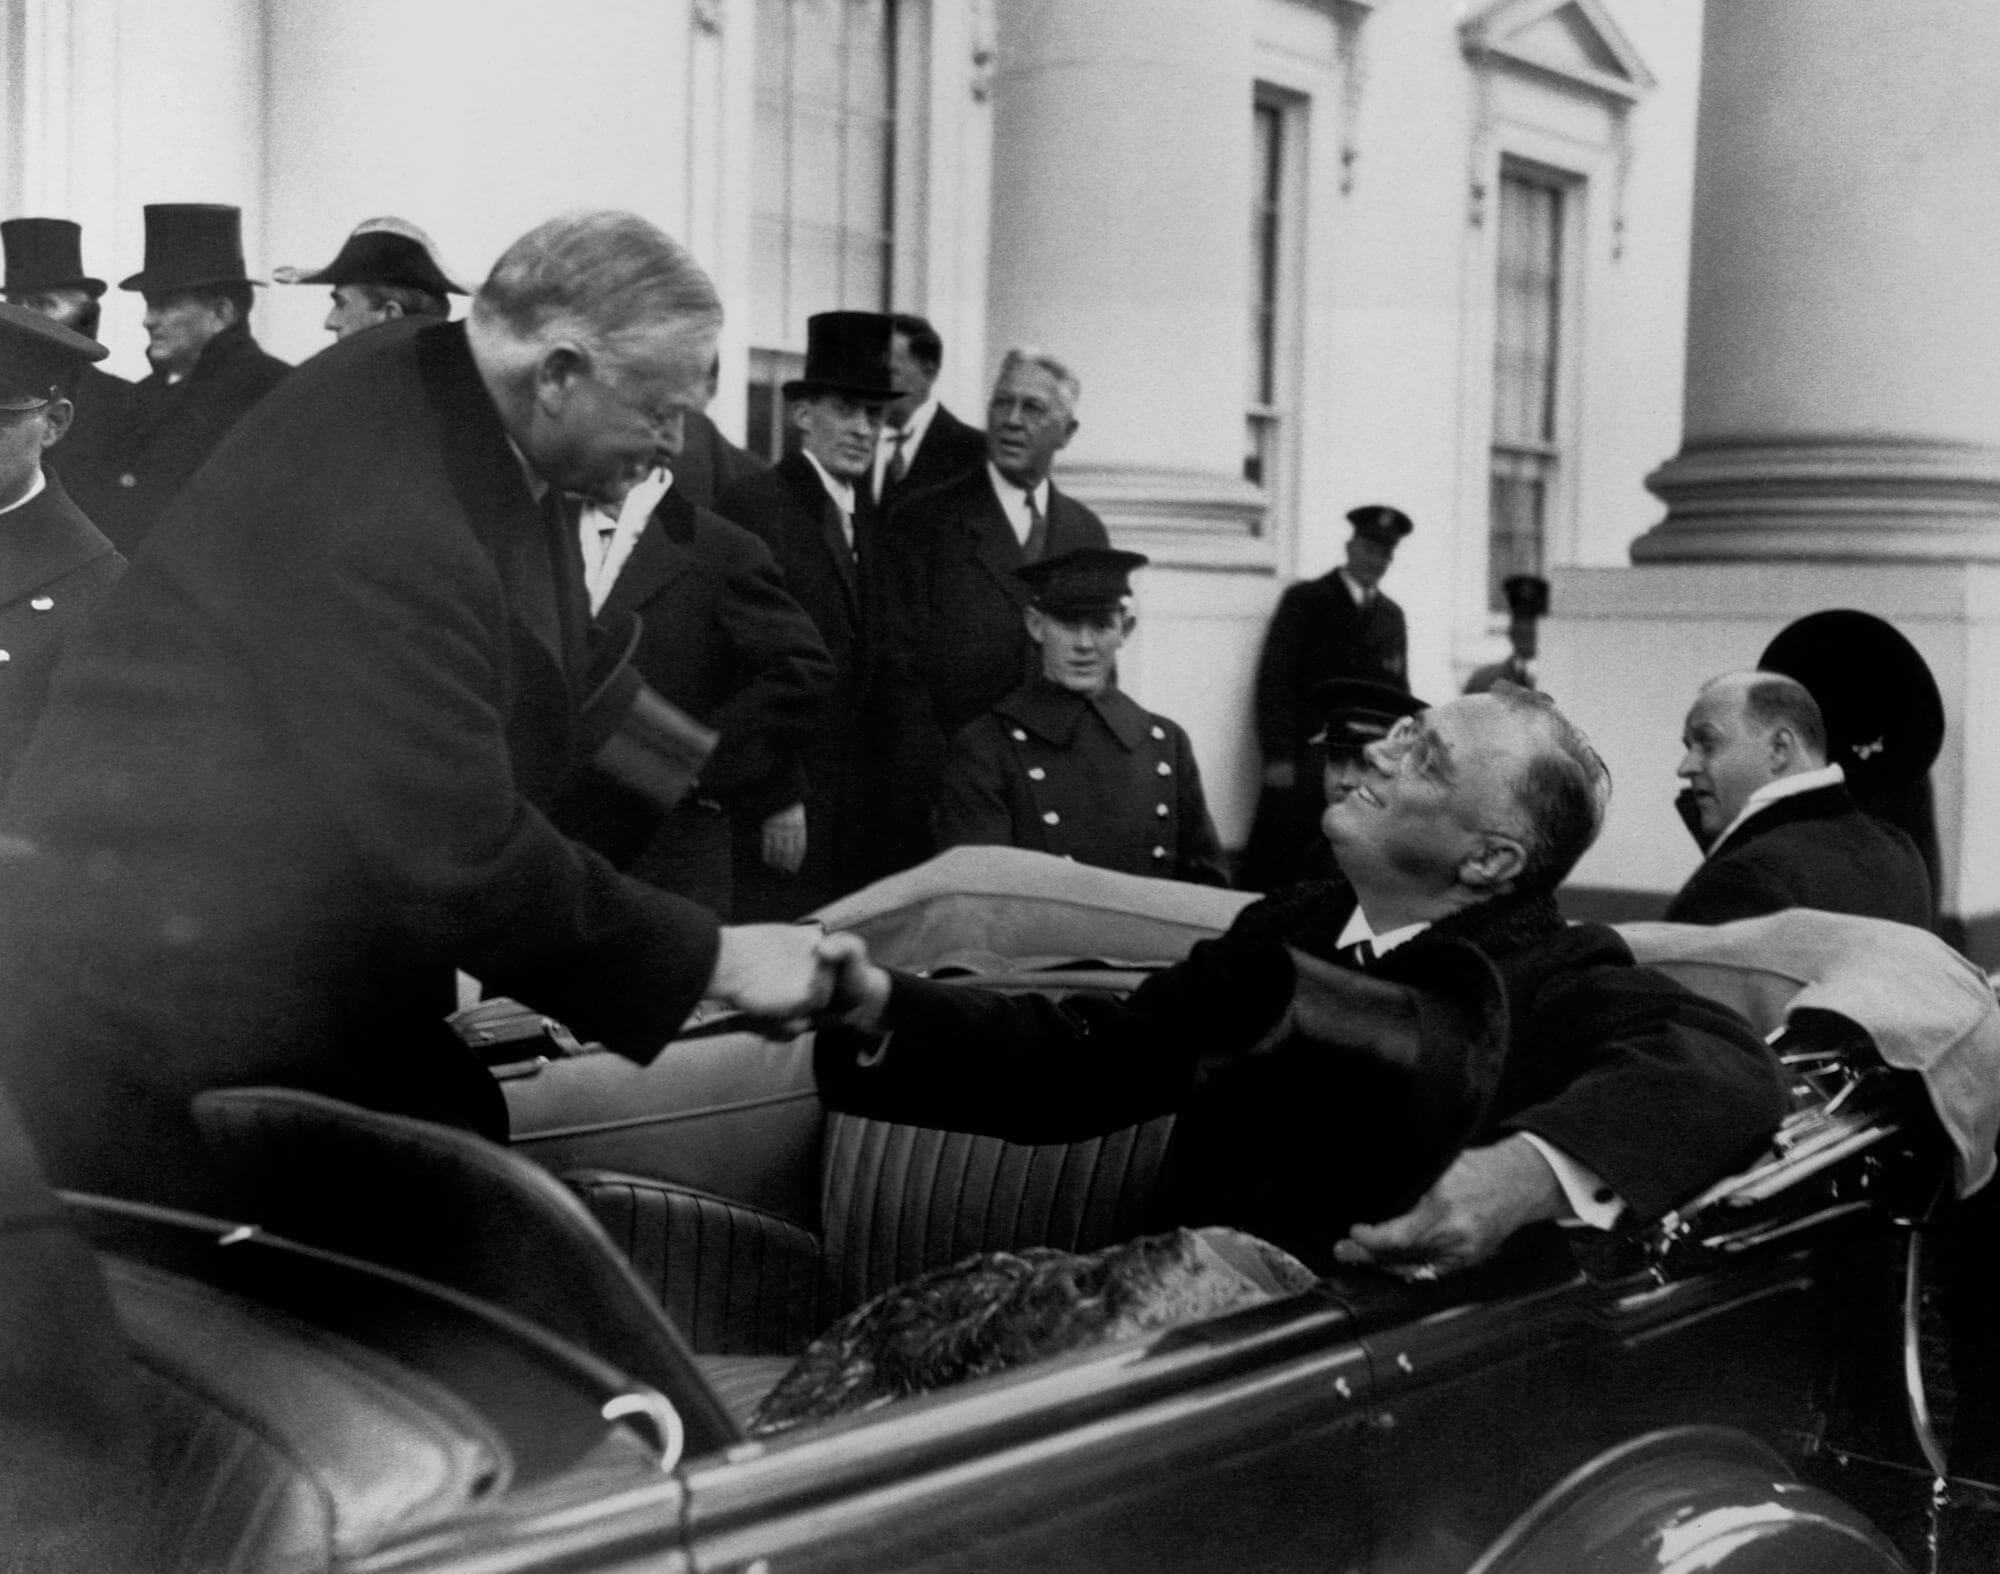 Herbert Hoover and Franklin D. Roosevelt, both president of the United States' during the financial crisis in the 1930's. ©wikimedia